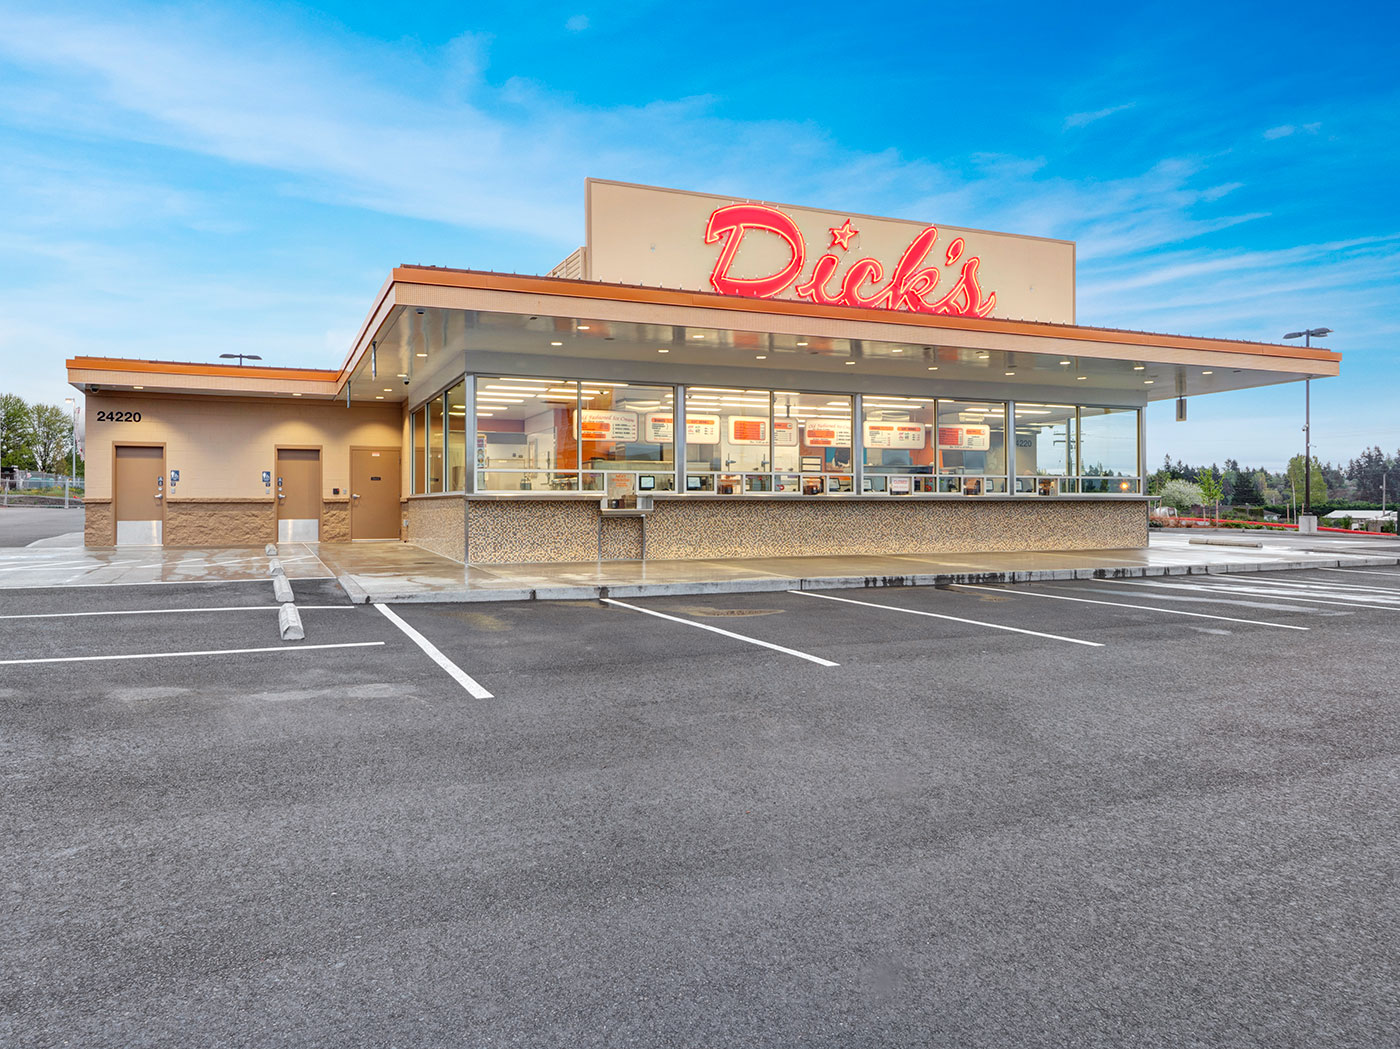 View of the front of the Dick's Drive-in